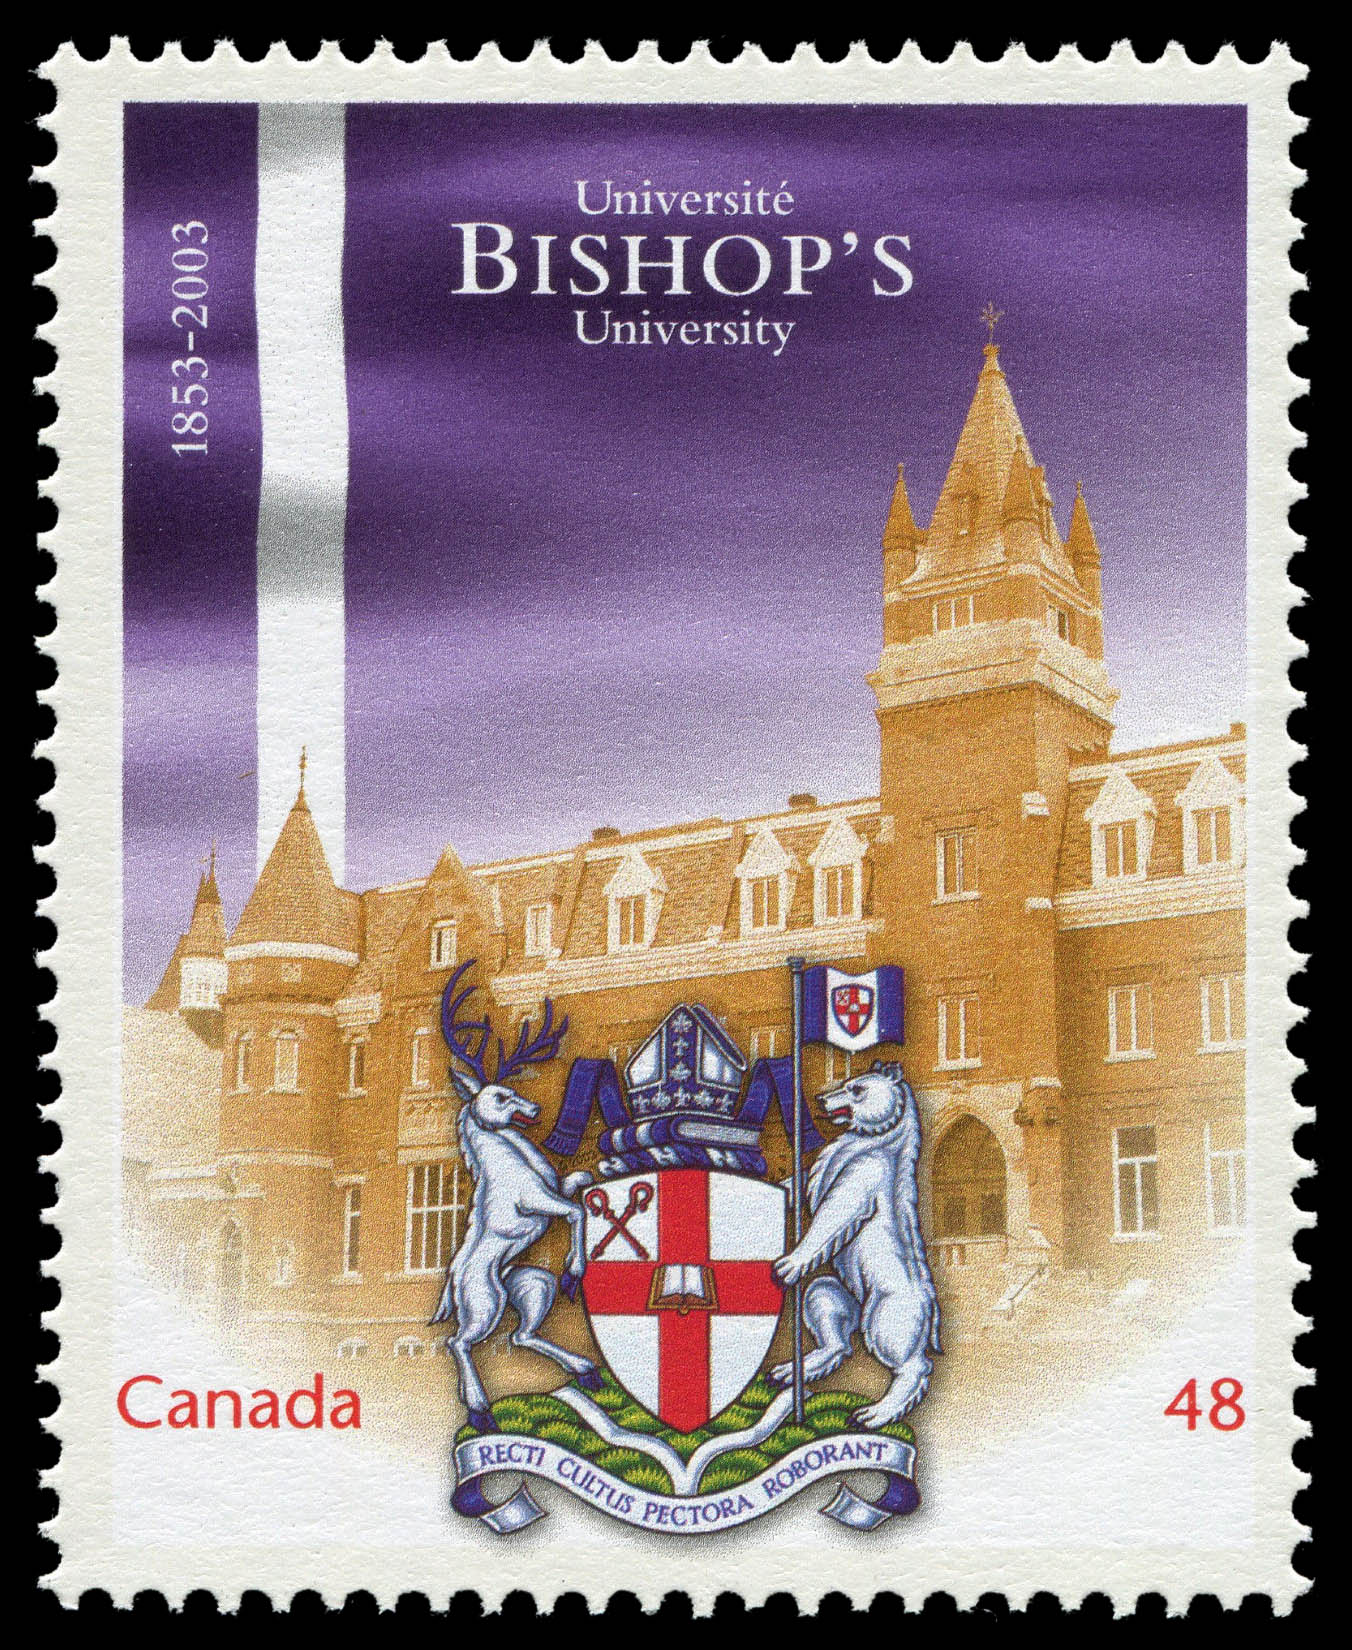 Bishop's University, 1853-2003 Canada Postage Stamp | Canadian Universities